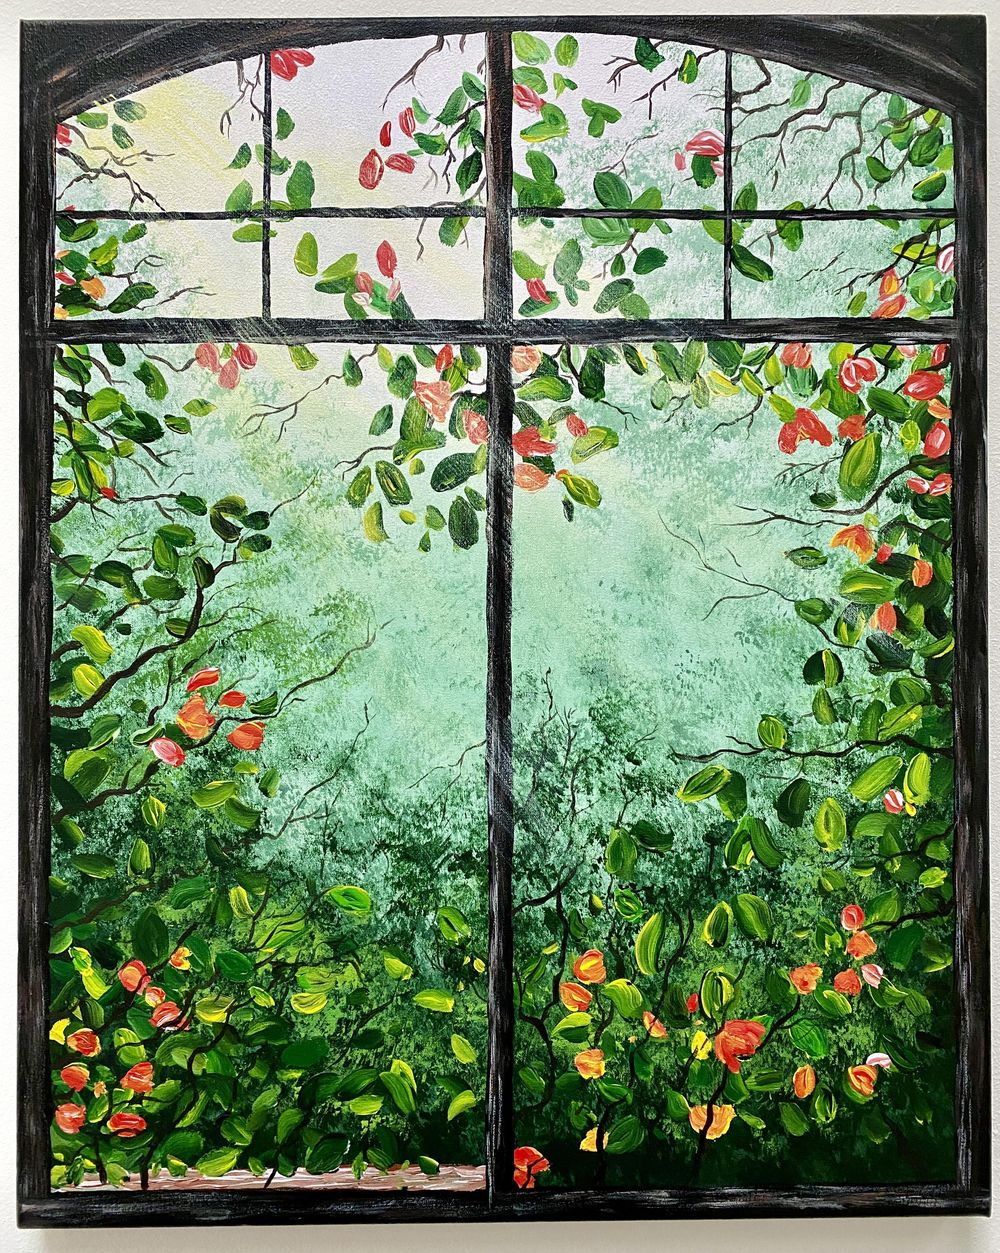 Window painting with greenery - image 2 - student project